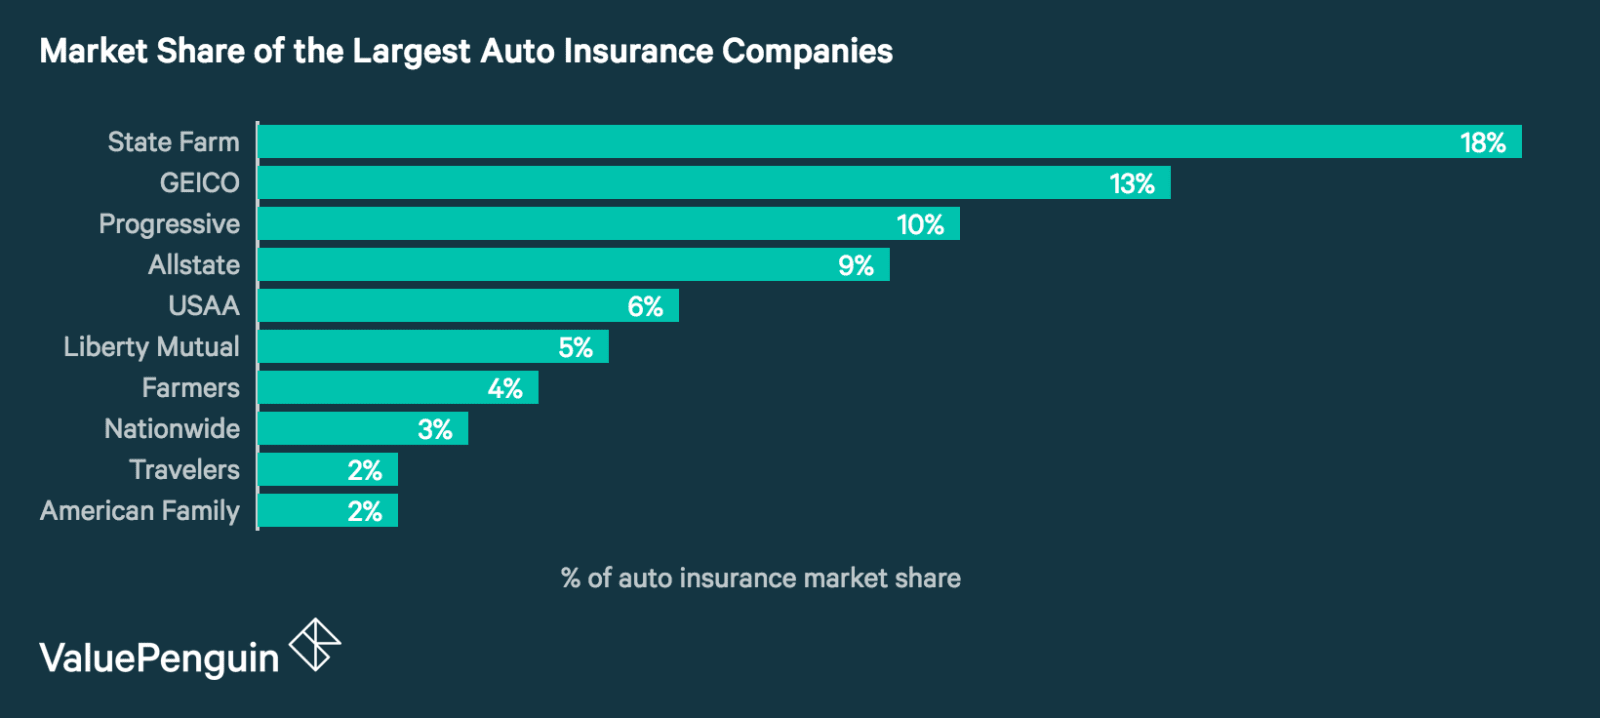 Market Share of the Largest Auto Insurance Companies